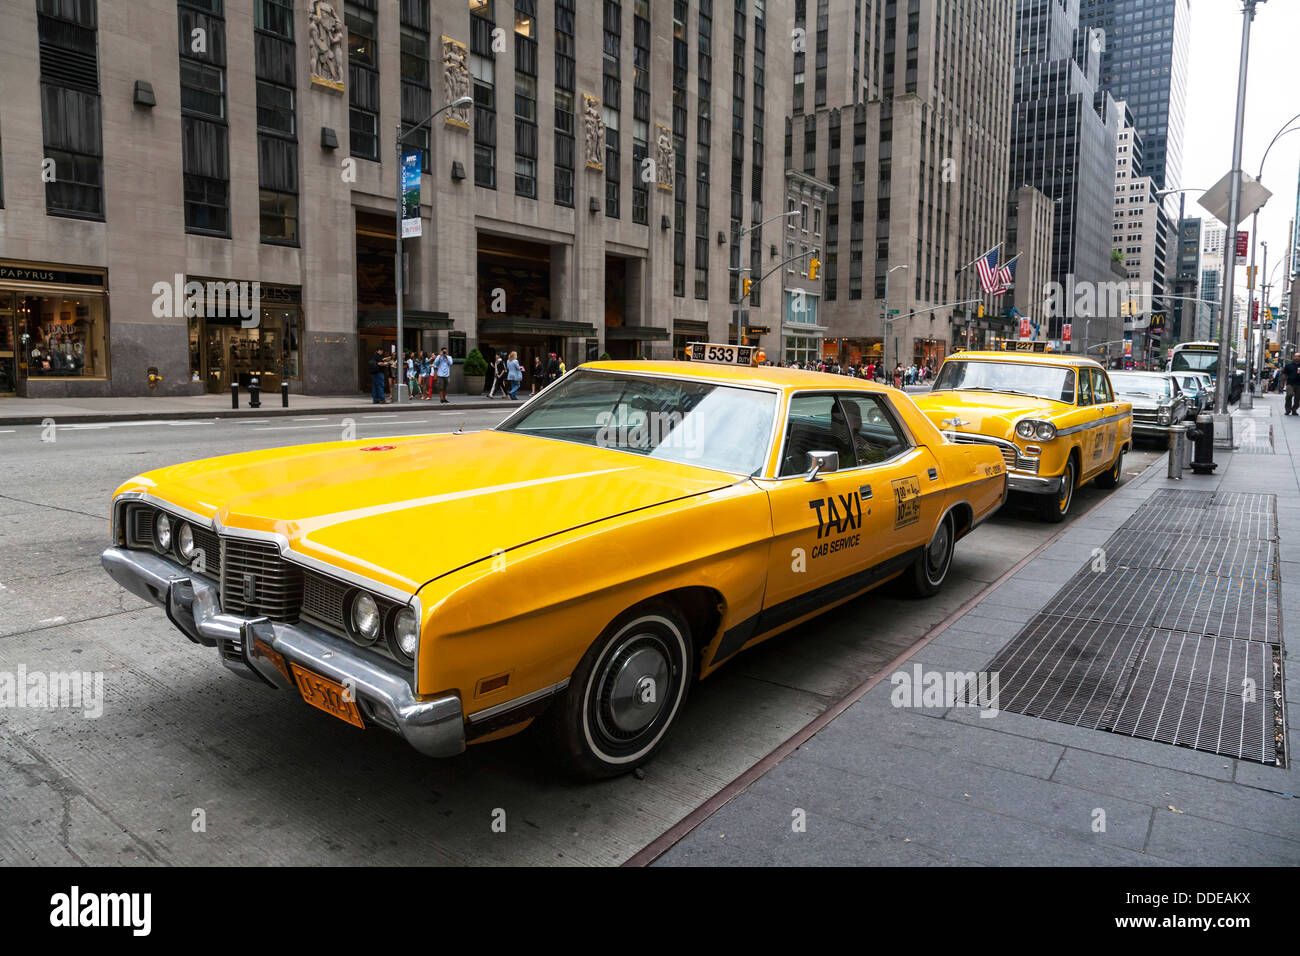 1970 39 s new york yellow taxi nyc usa stock photo 59937358 alamy. Black Bedroom Furniture Sets. Home Design Ideas